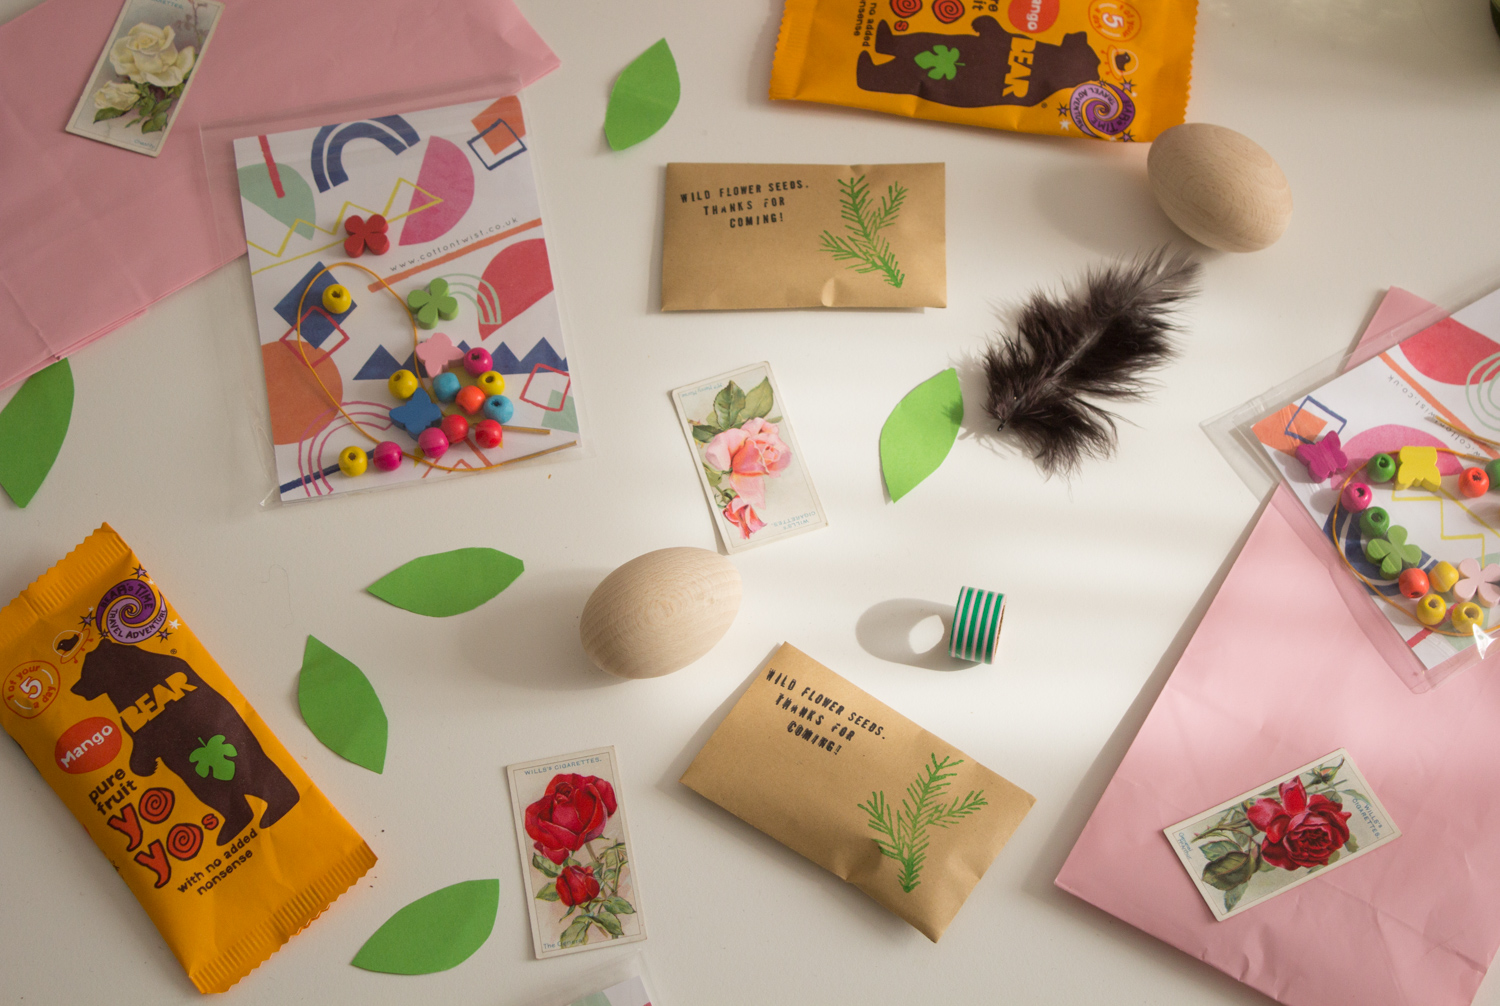 Party bag assembly featuring craft kits from  Cotton Twist-  highly recommended.